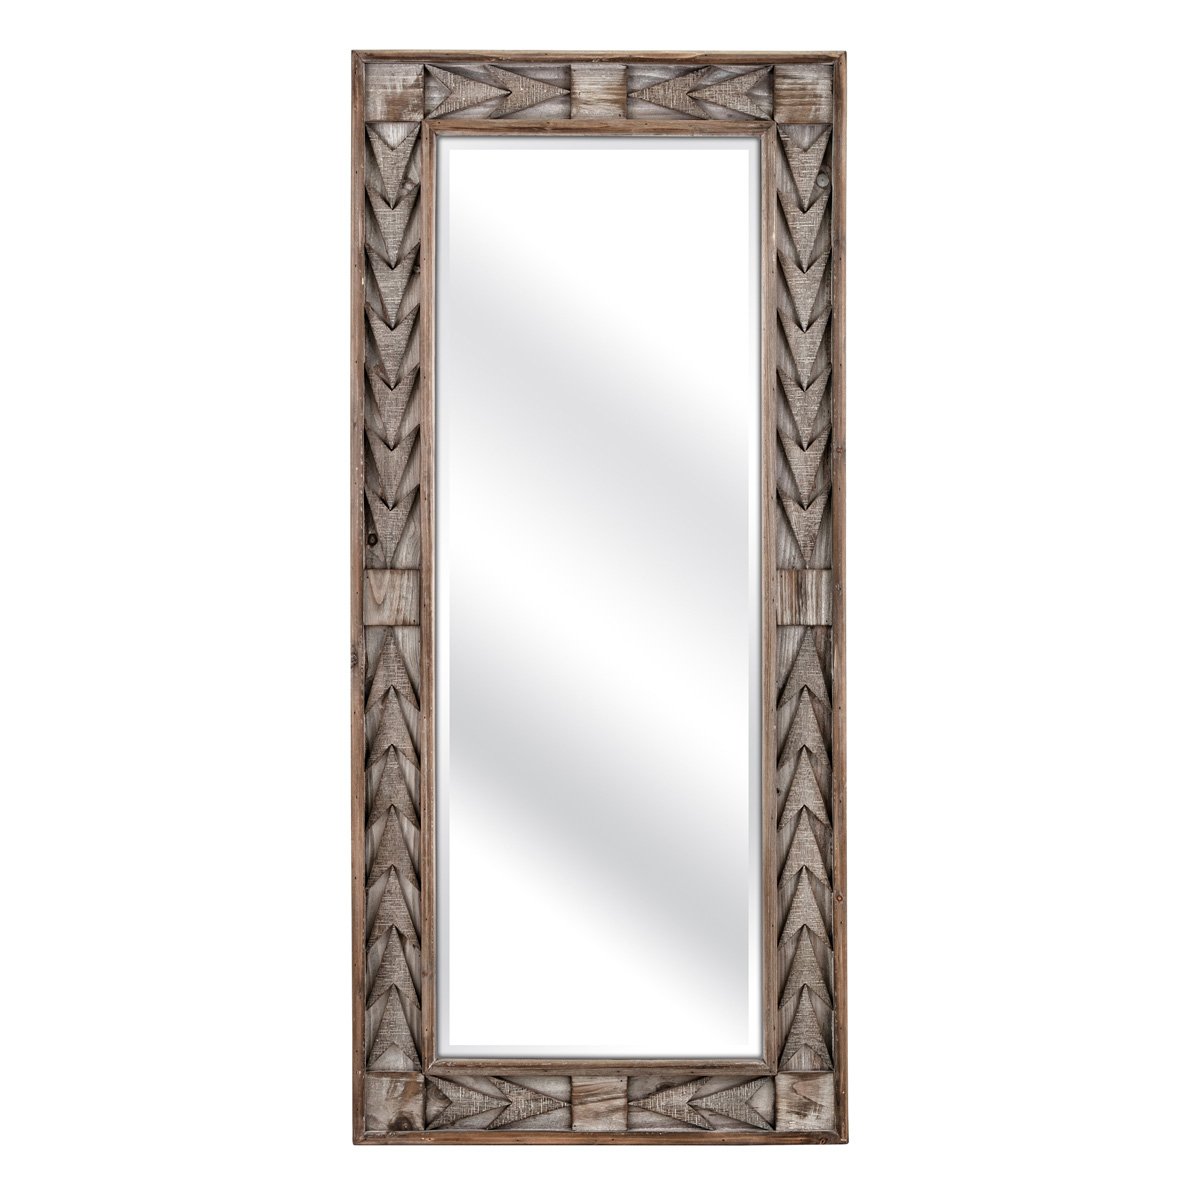 Geronimo Wall Mirror